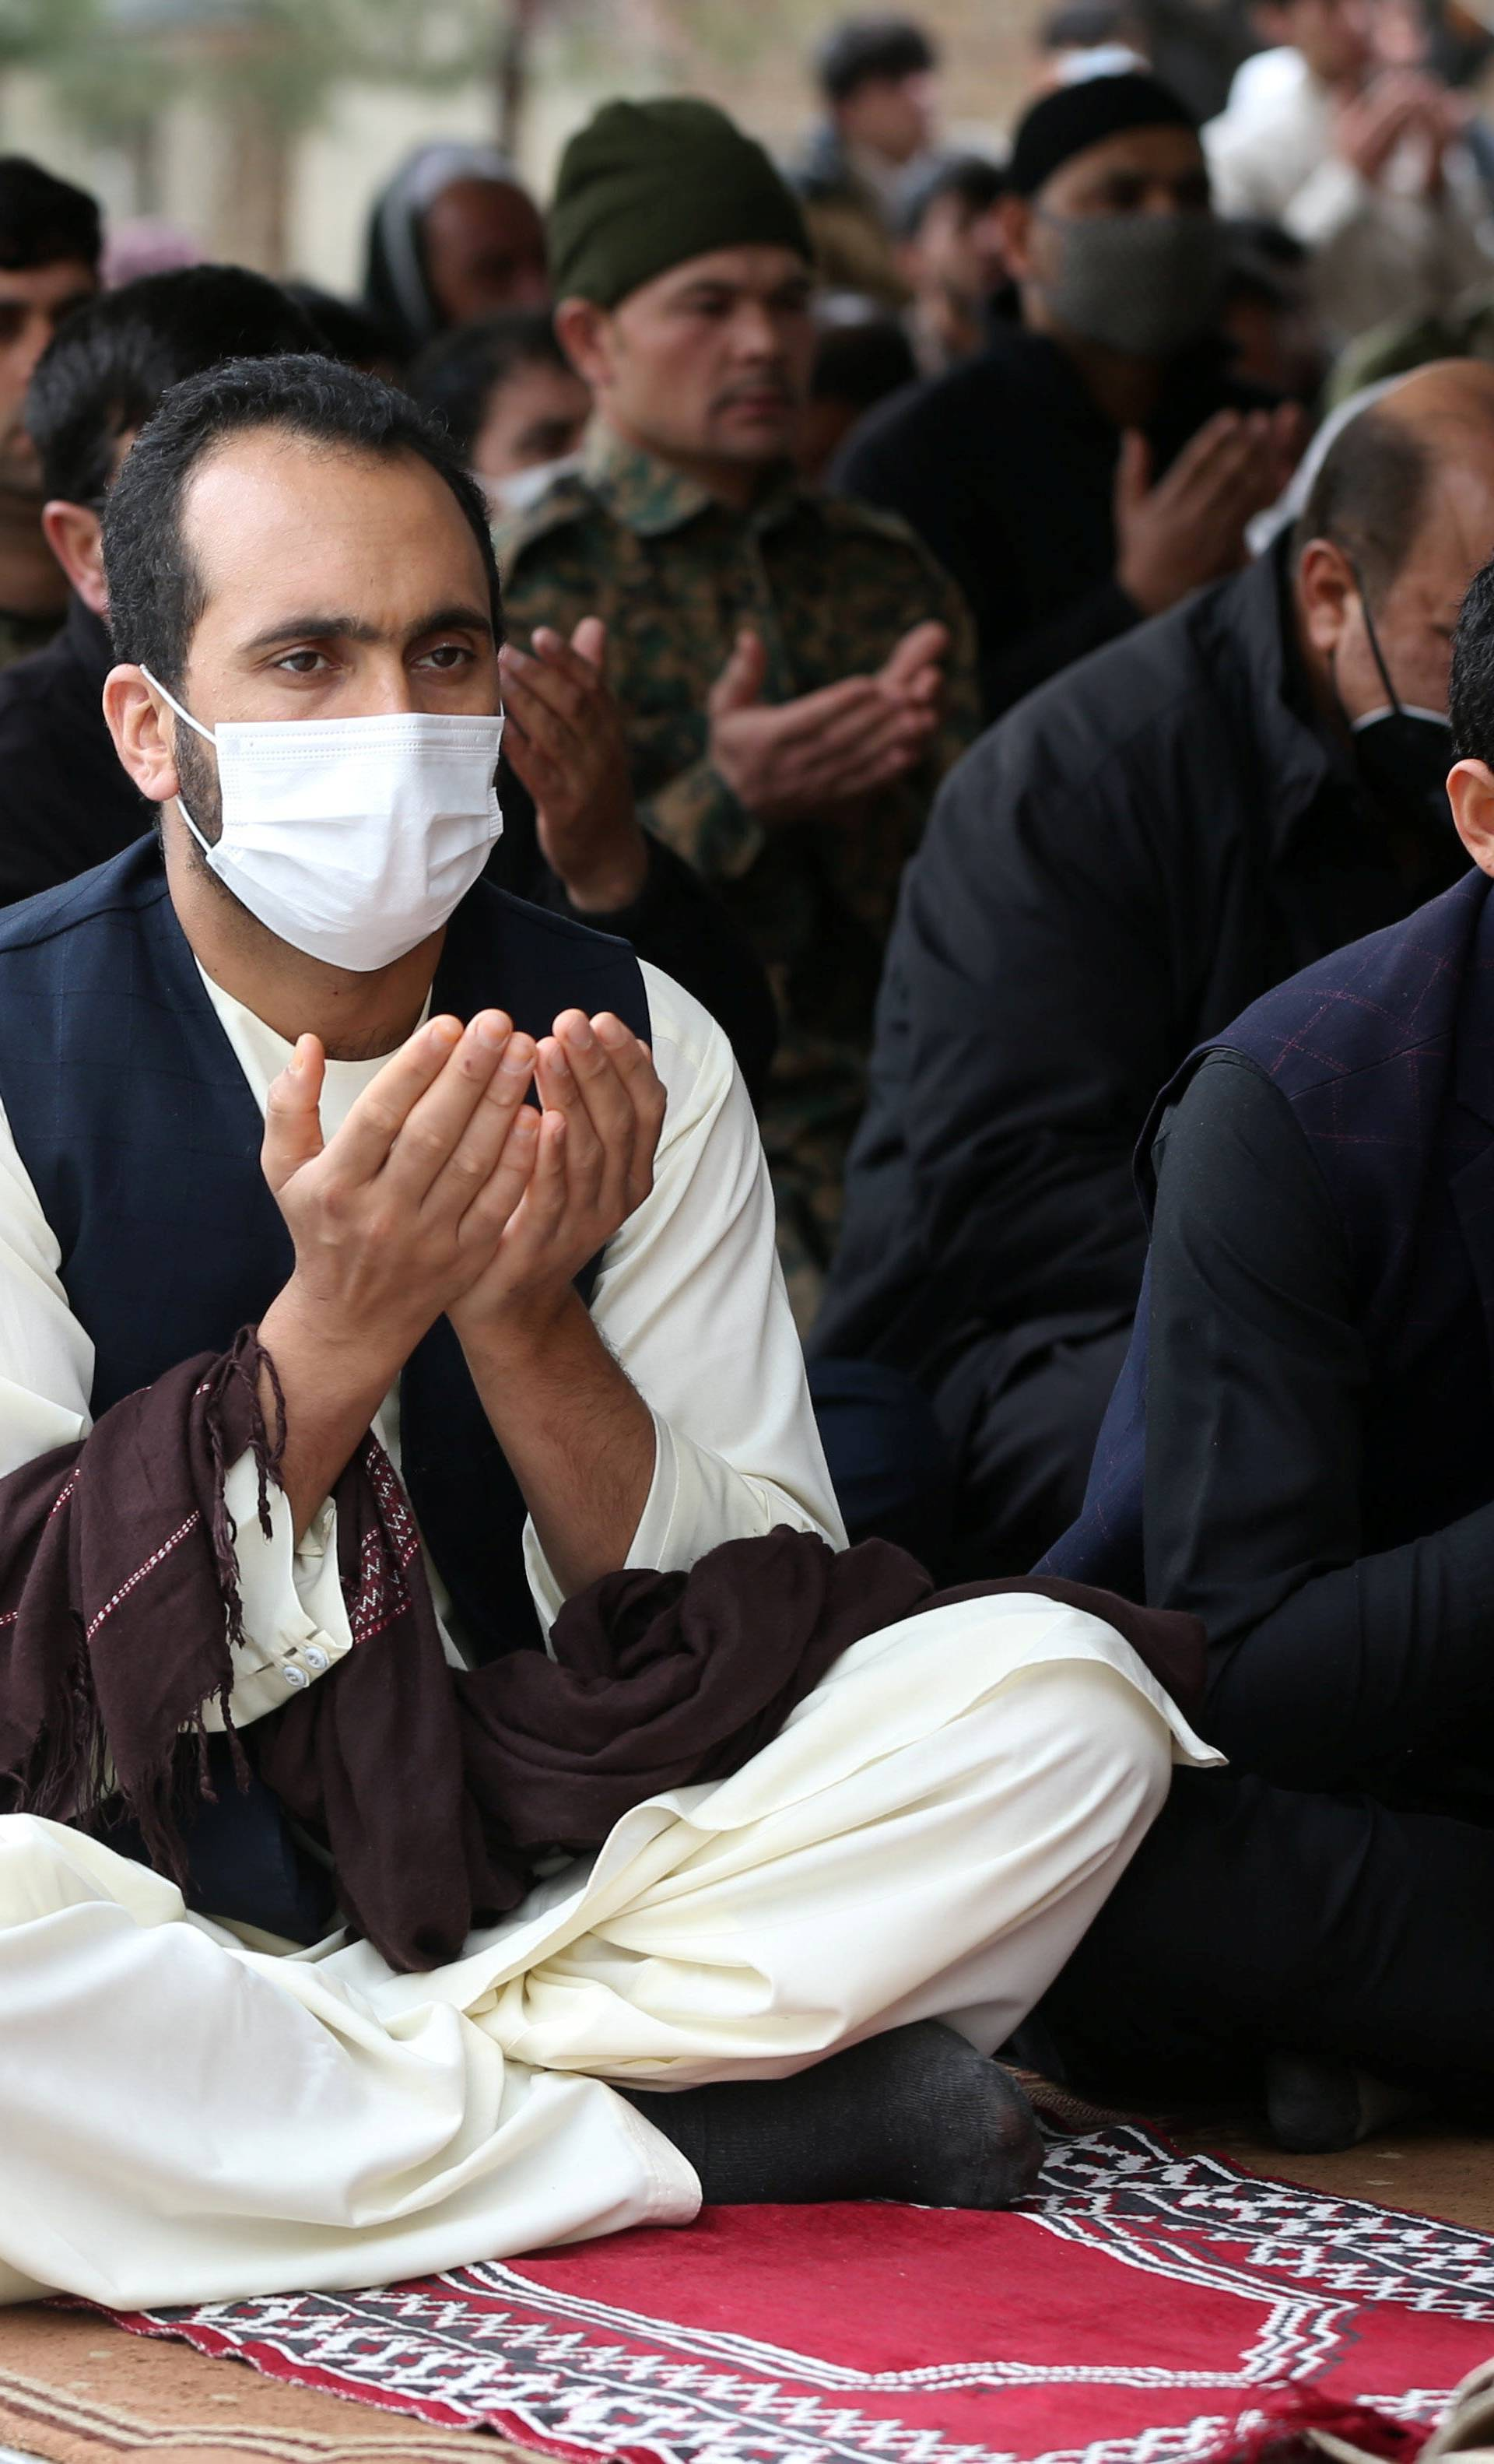 Muslims wearing protective masks attend Friday prayers at a mosque, amid concerns about the spread of coronavirus disease (COVID-19), in Kabul